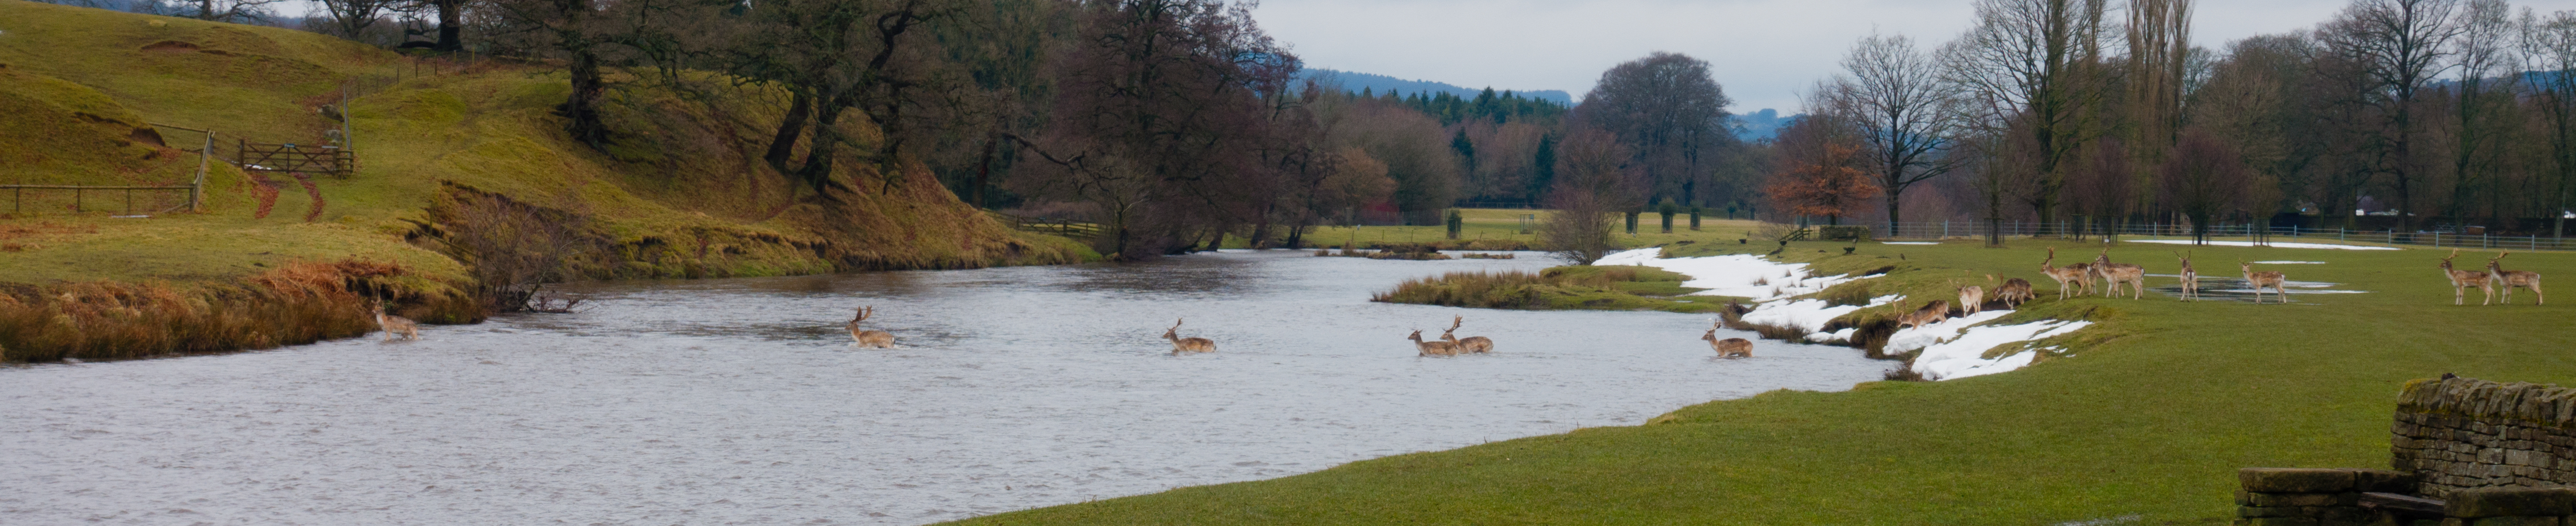 deer crossing river at Chatsworth house